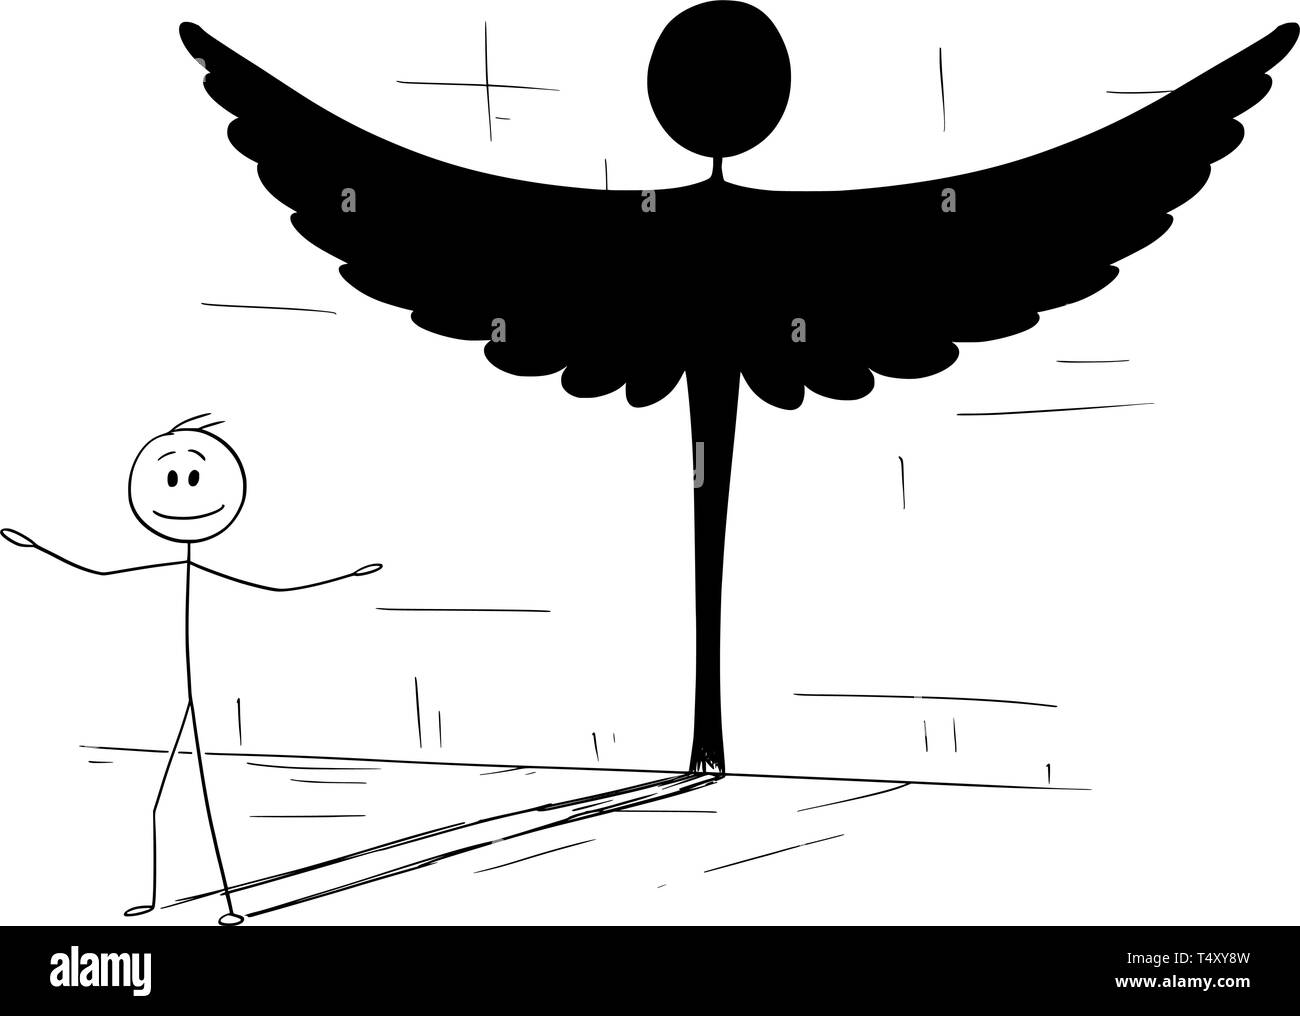 Cartoon stick figure drawing conceptual illustration of good man or person casting shadow in shape of angel. Metaphor or true personality hidden inside. - Stock Vector